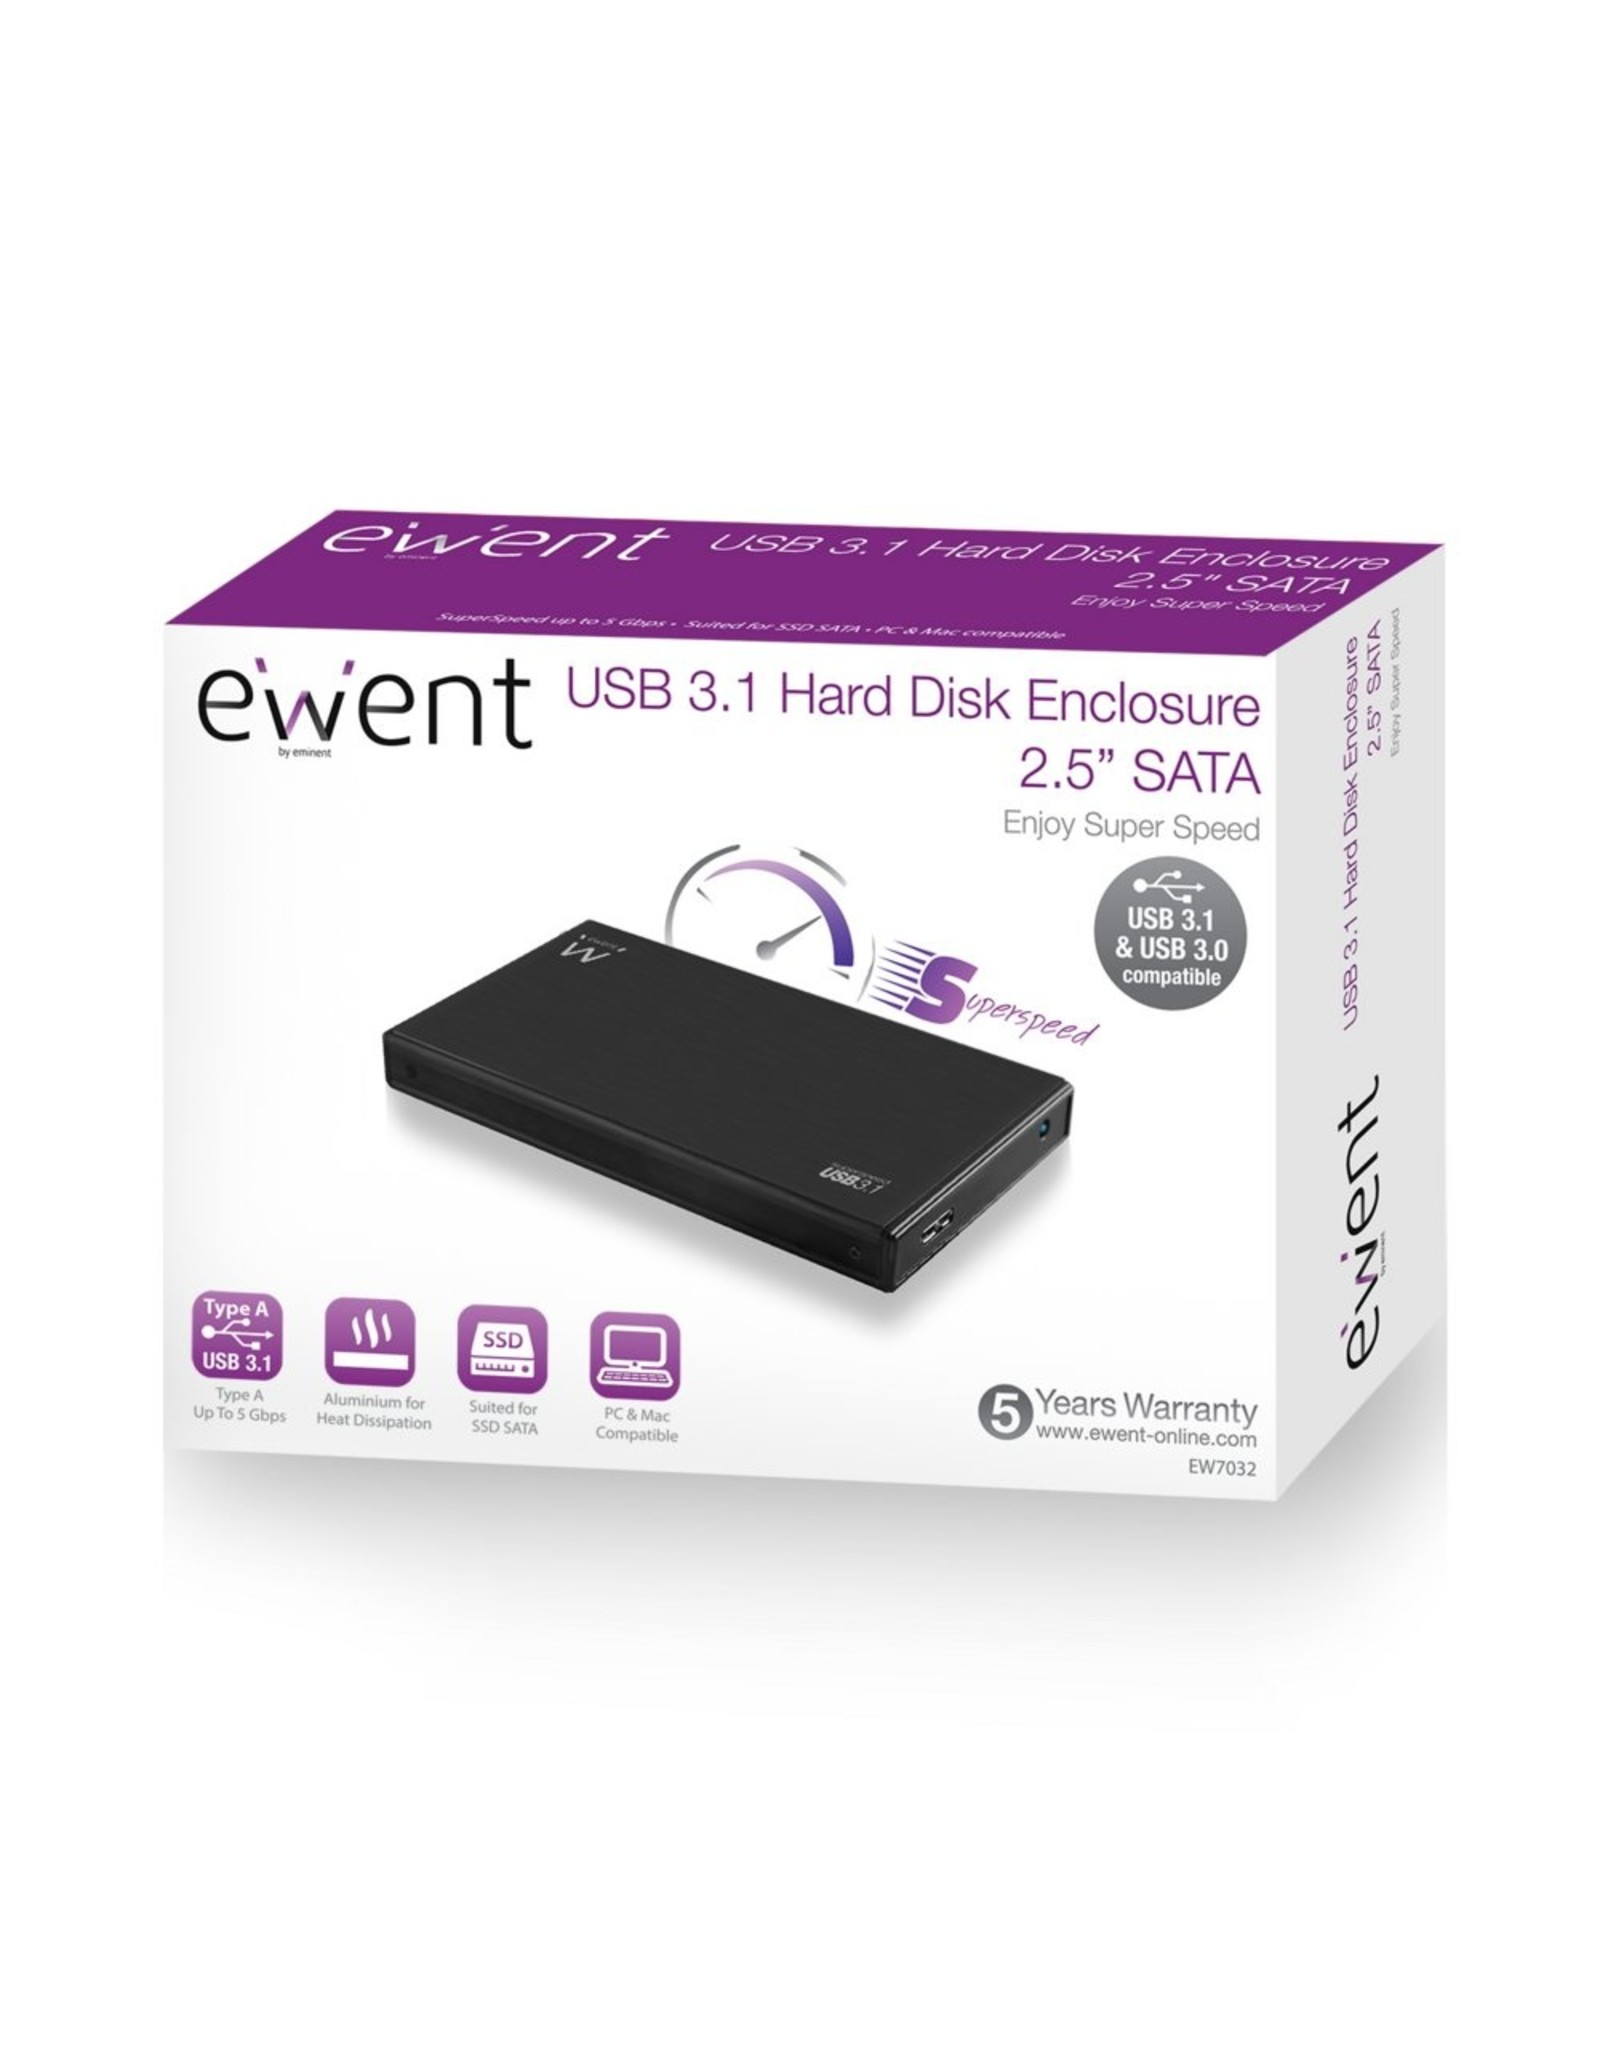 "Ewent USB 3.1 Gen1 (USB 3.0) 2.5"" SATA Hard Disk and SSD"